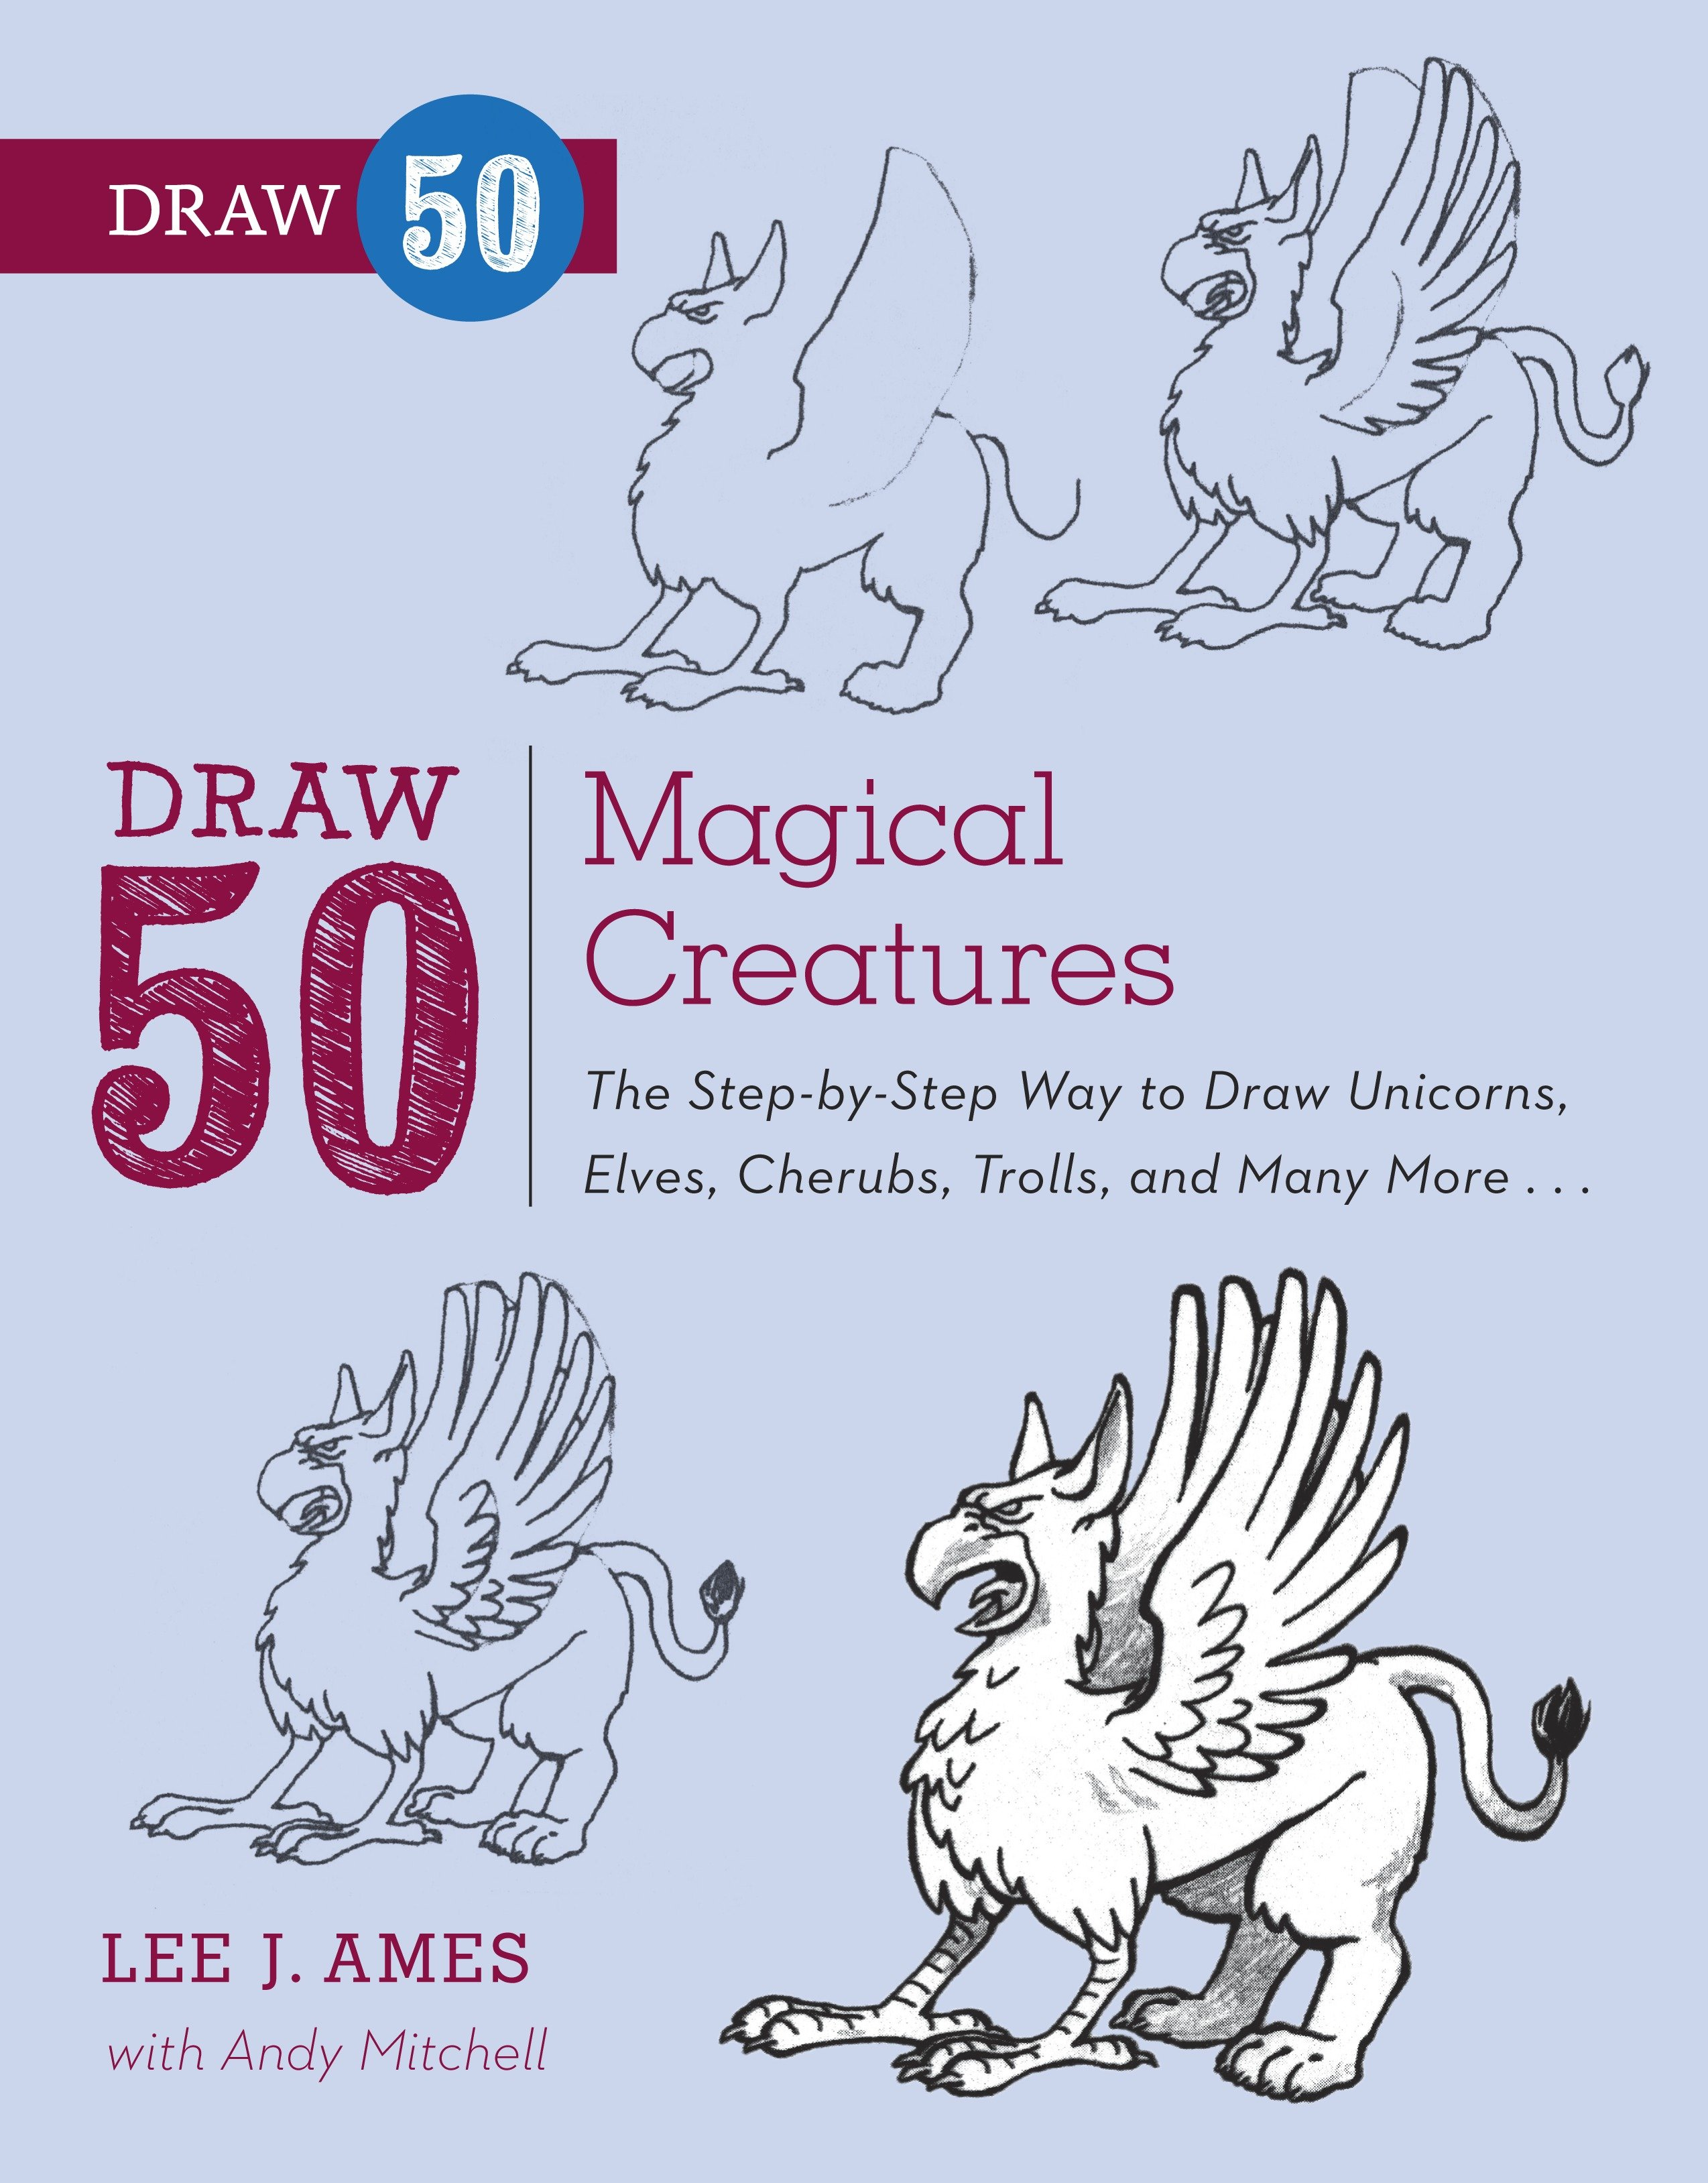 Draw 50 Magical Creatures The Step-by-Step Way to Draw Unicorns, Elves, Cherubs, Trolls, and Many More